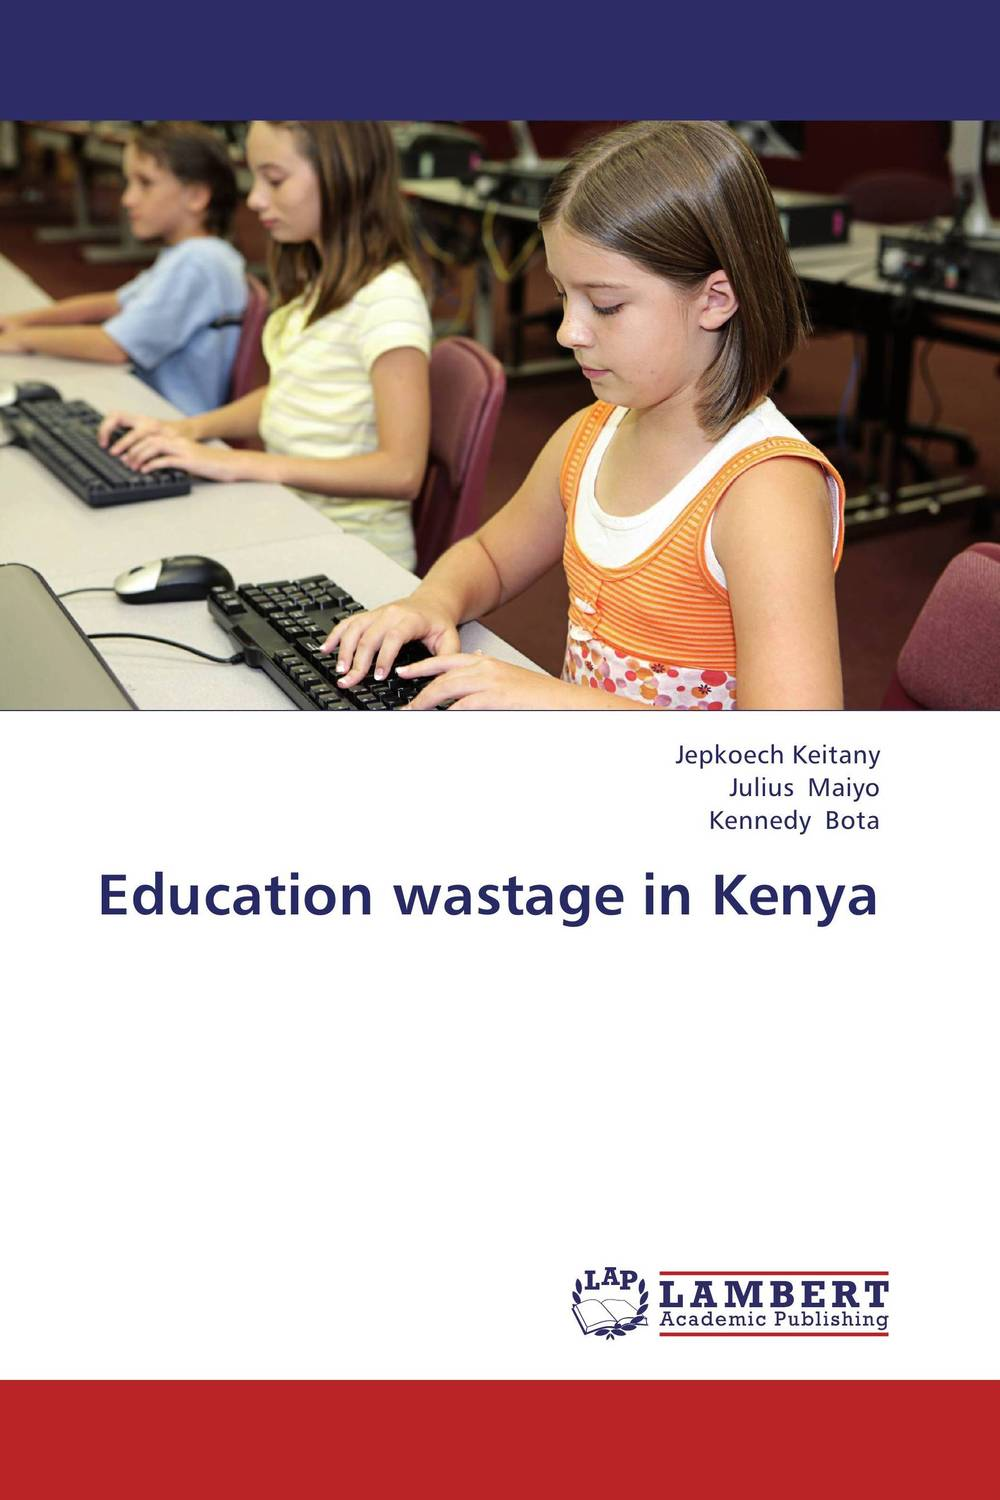 Education wastage in Kenya wastage in secondary schools in kenya case of murang'a east district